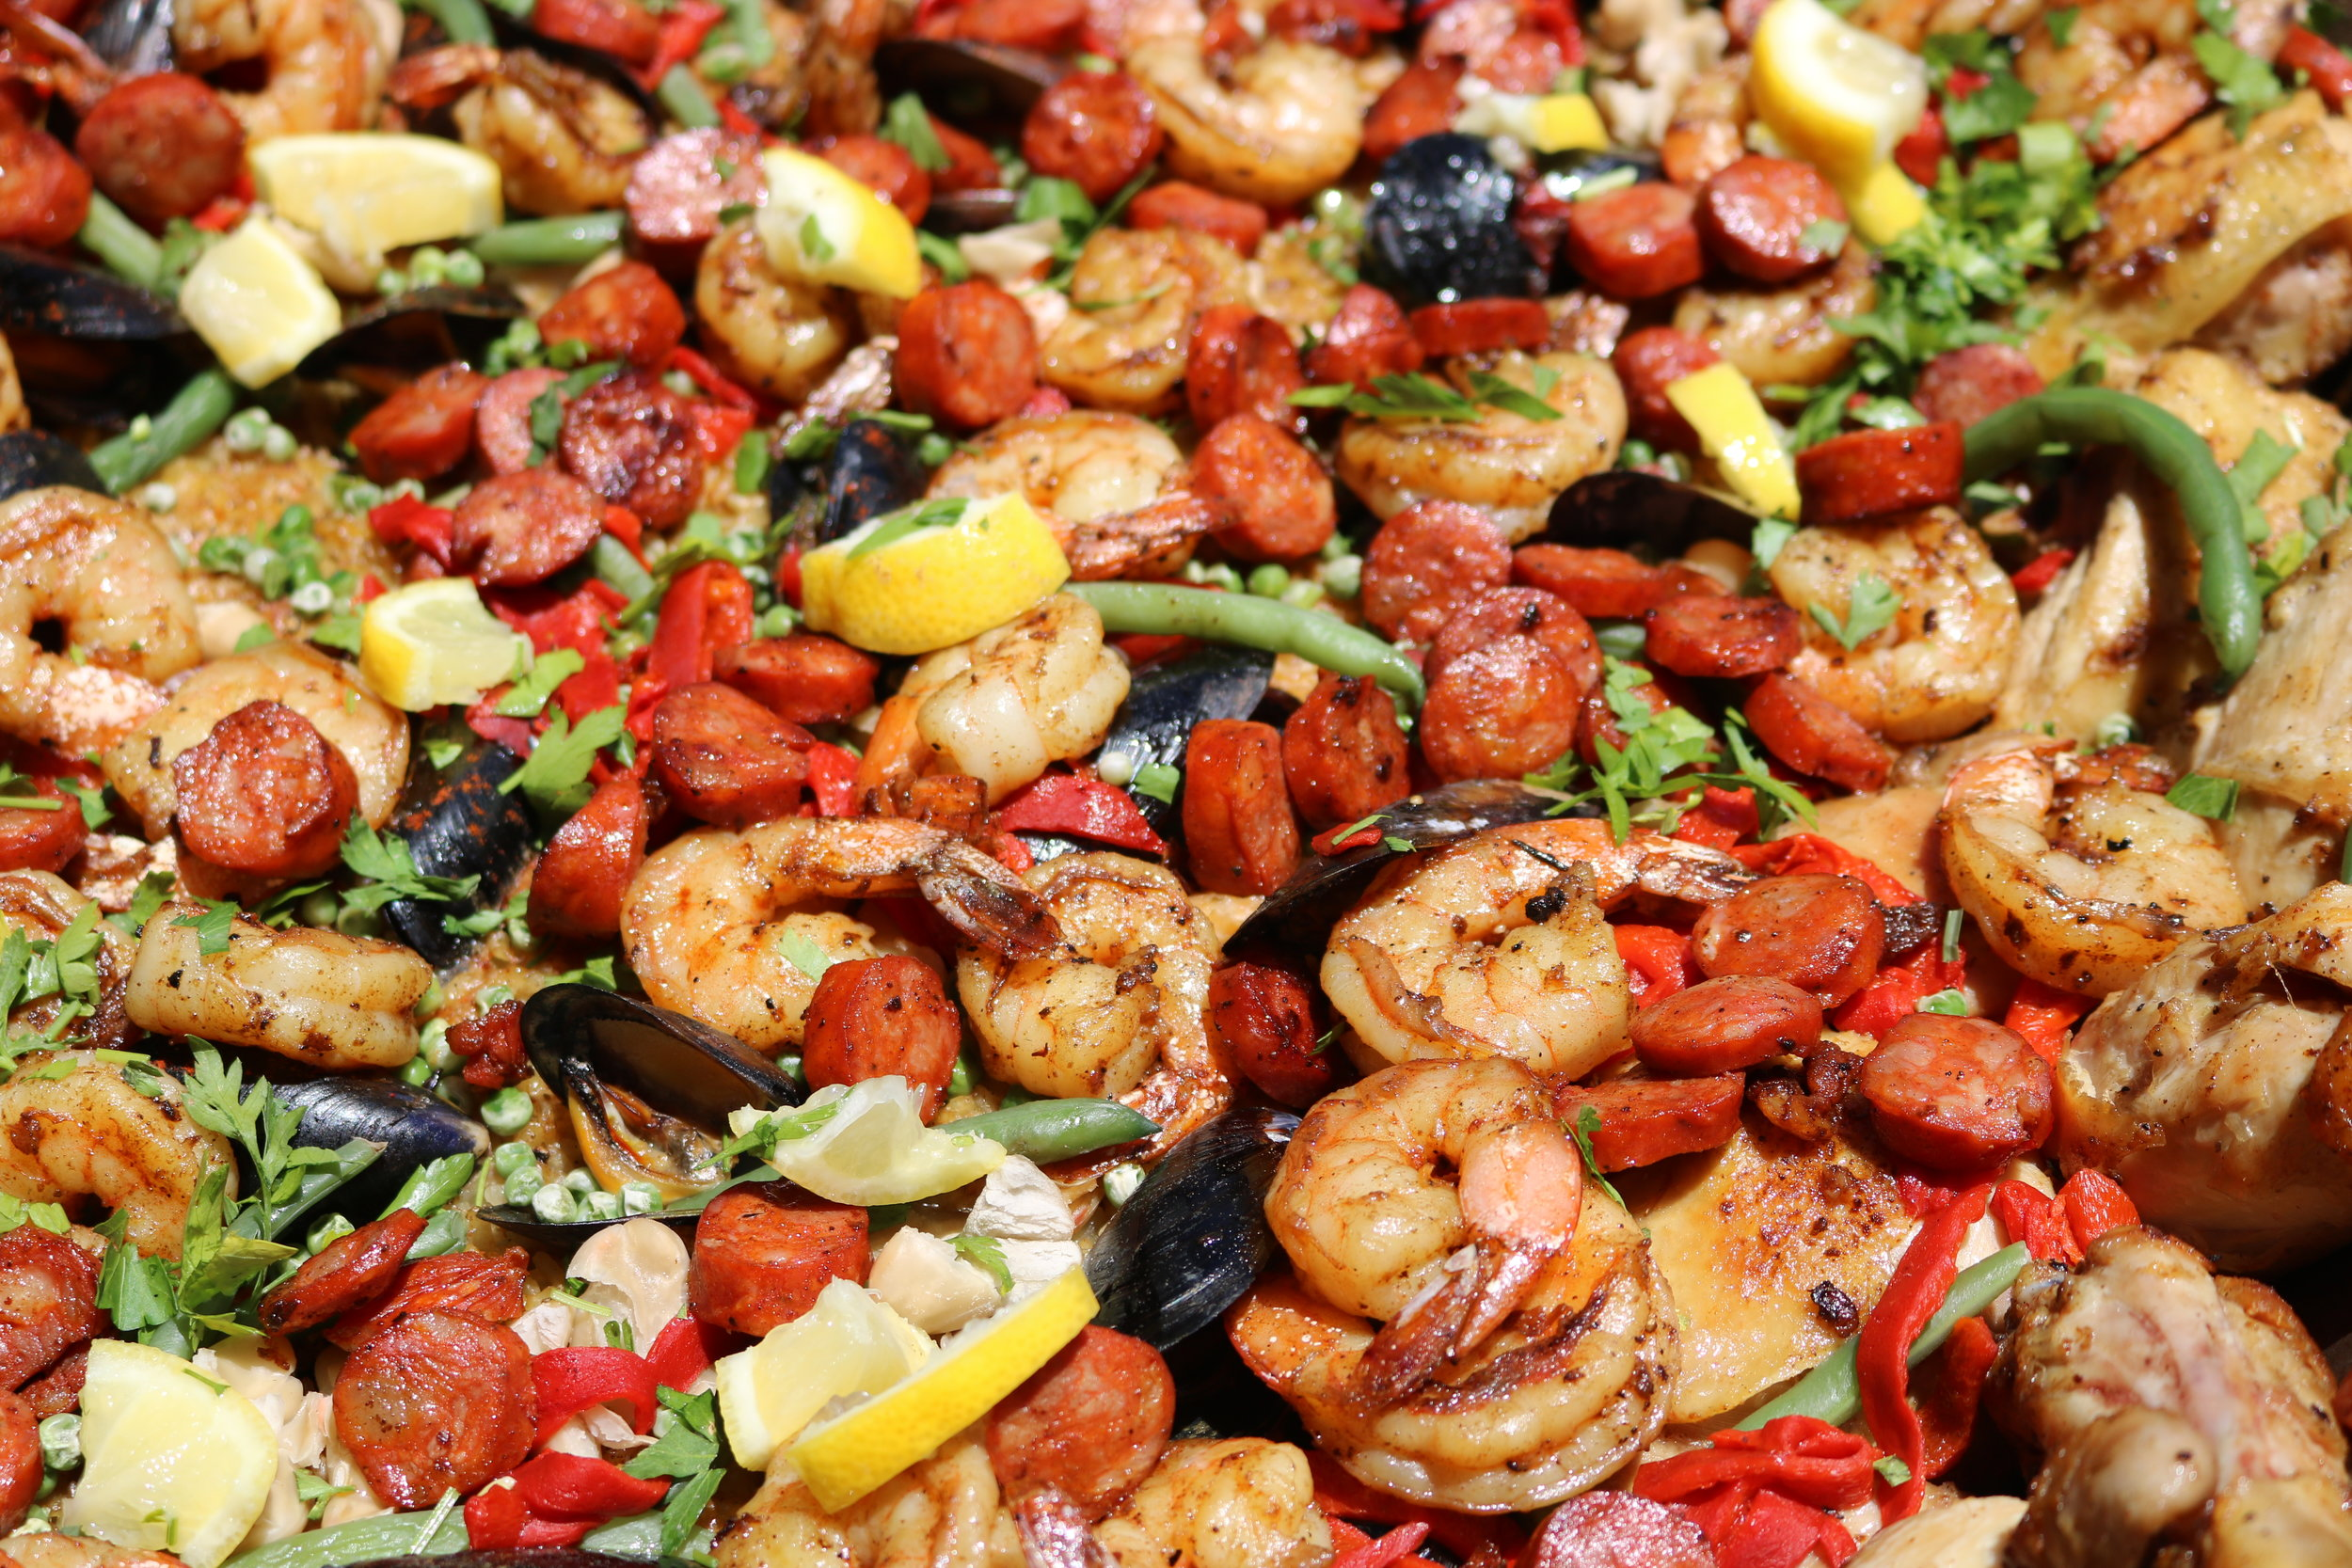 bomba-paella-catering-los-angeles1.JPG